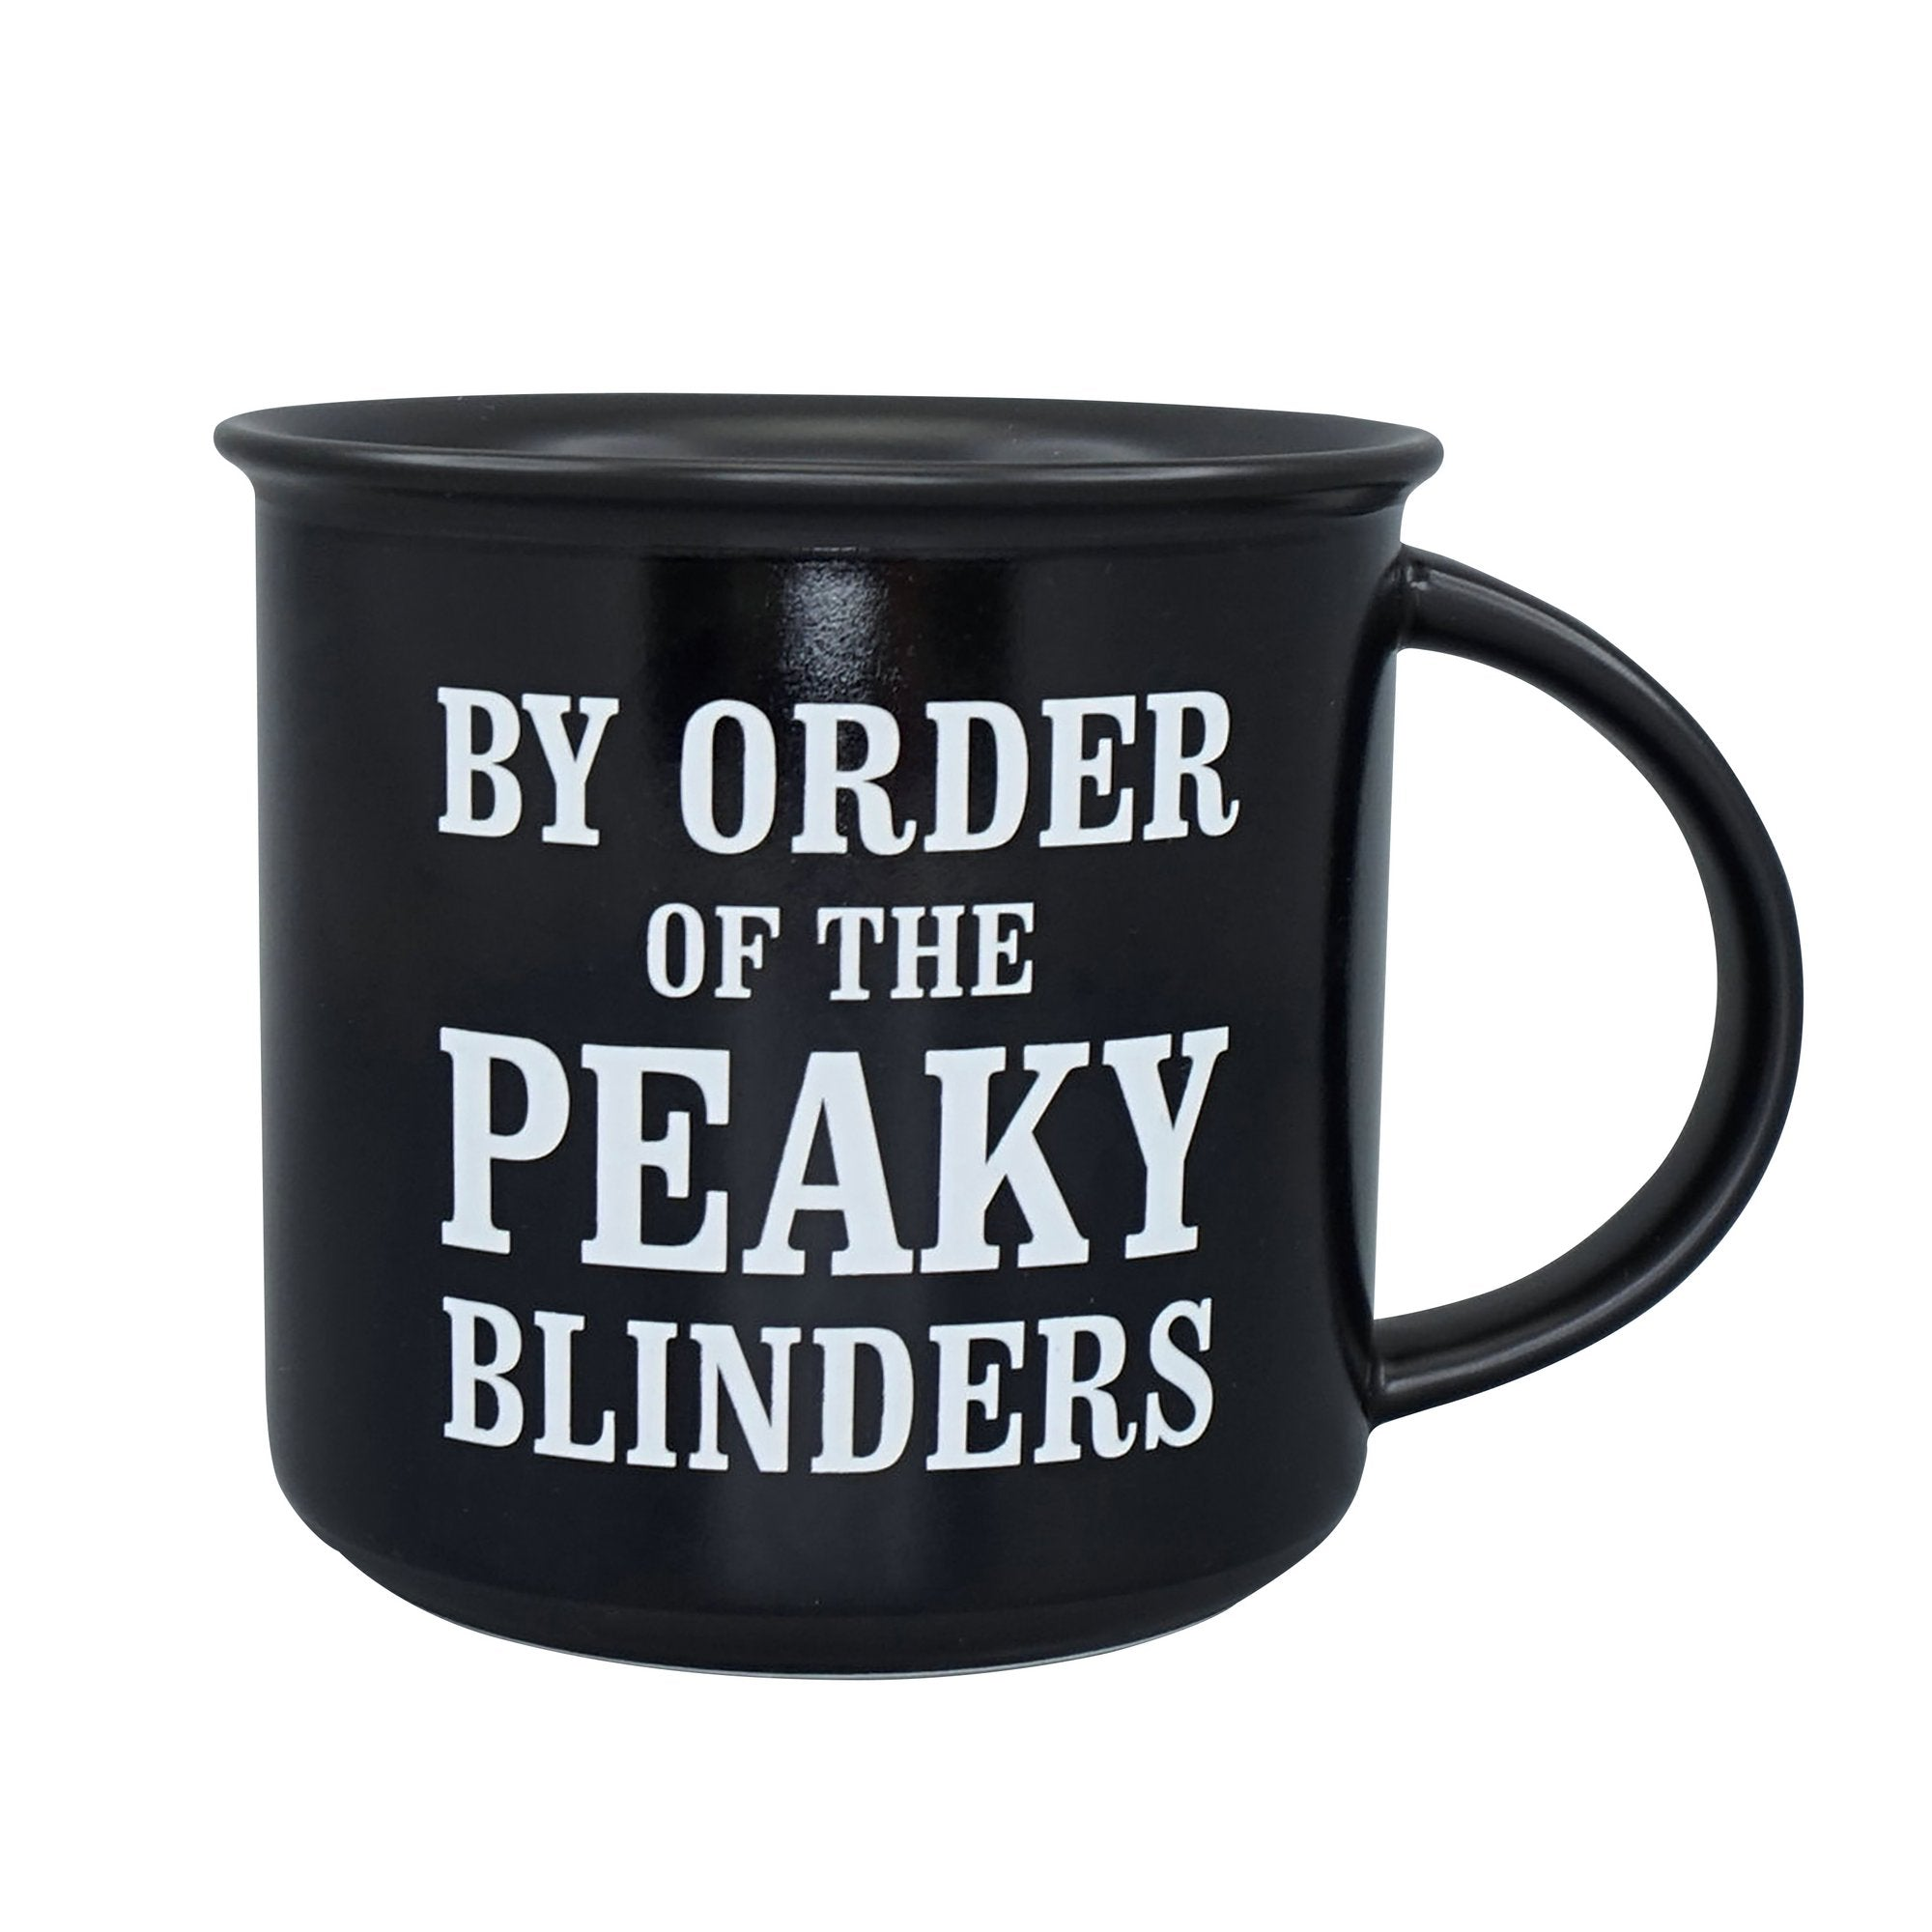 Peaky Blinders Heat Change Mug - By Order Of